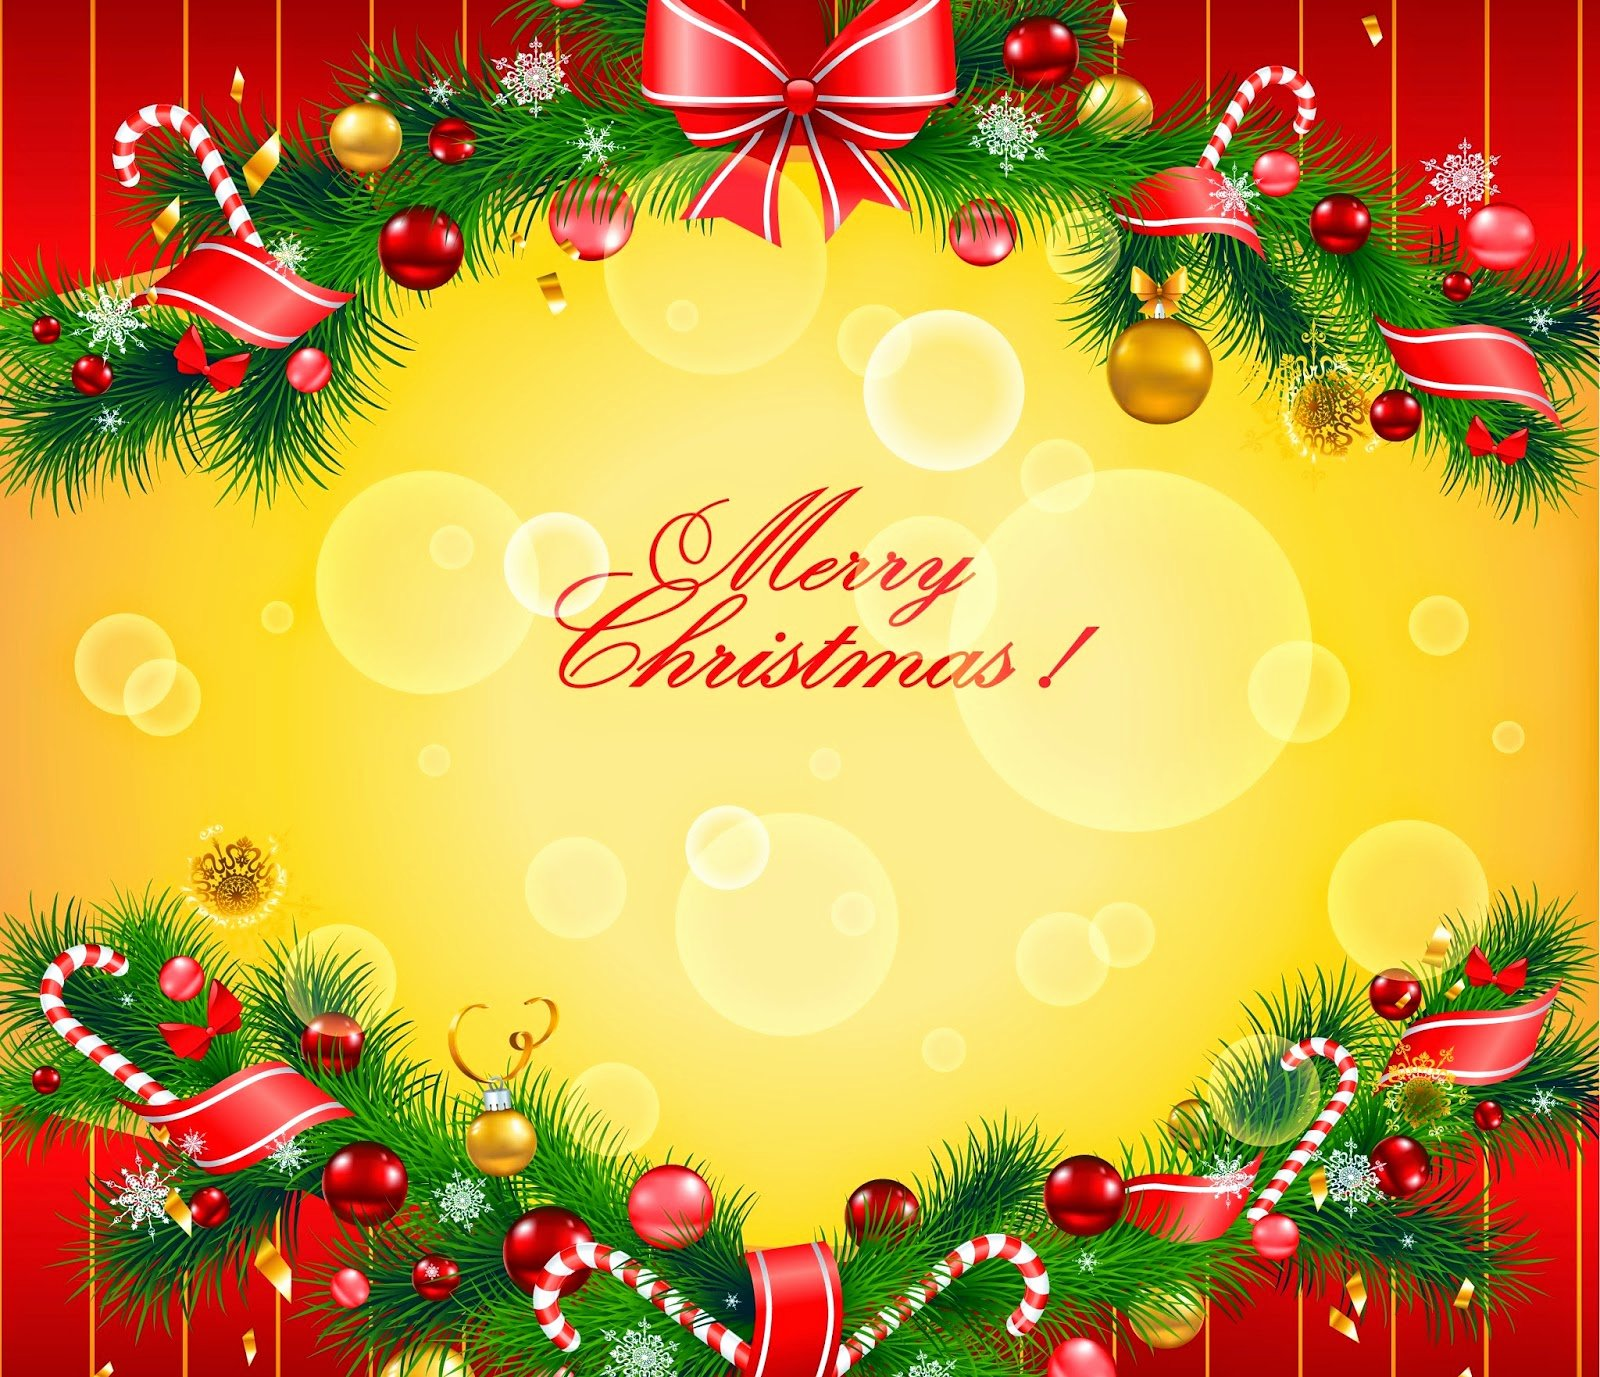 Merry Christmas Greeting Card Hd Images Free